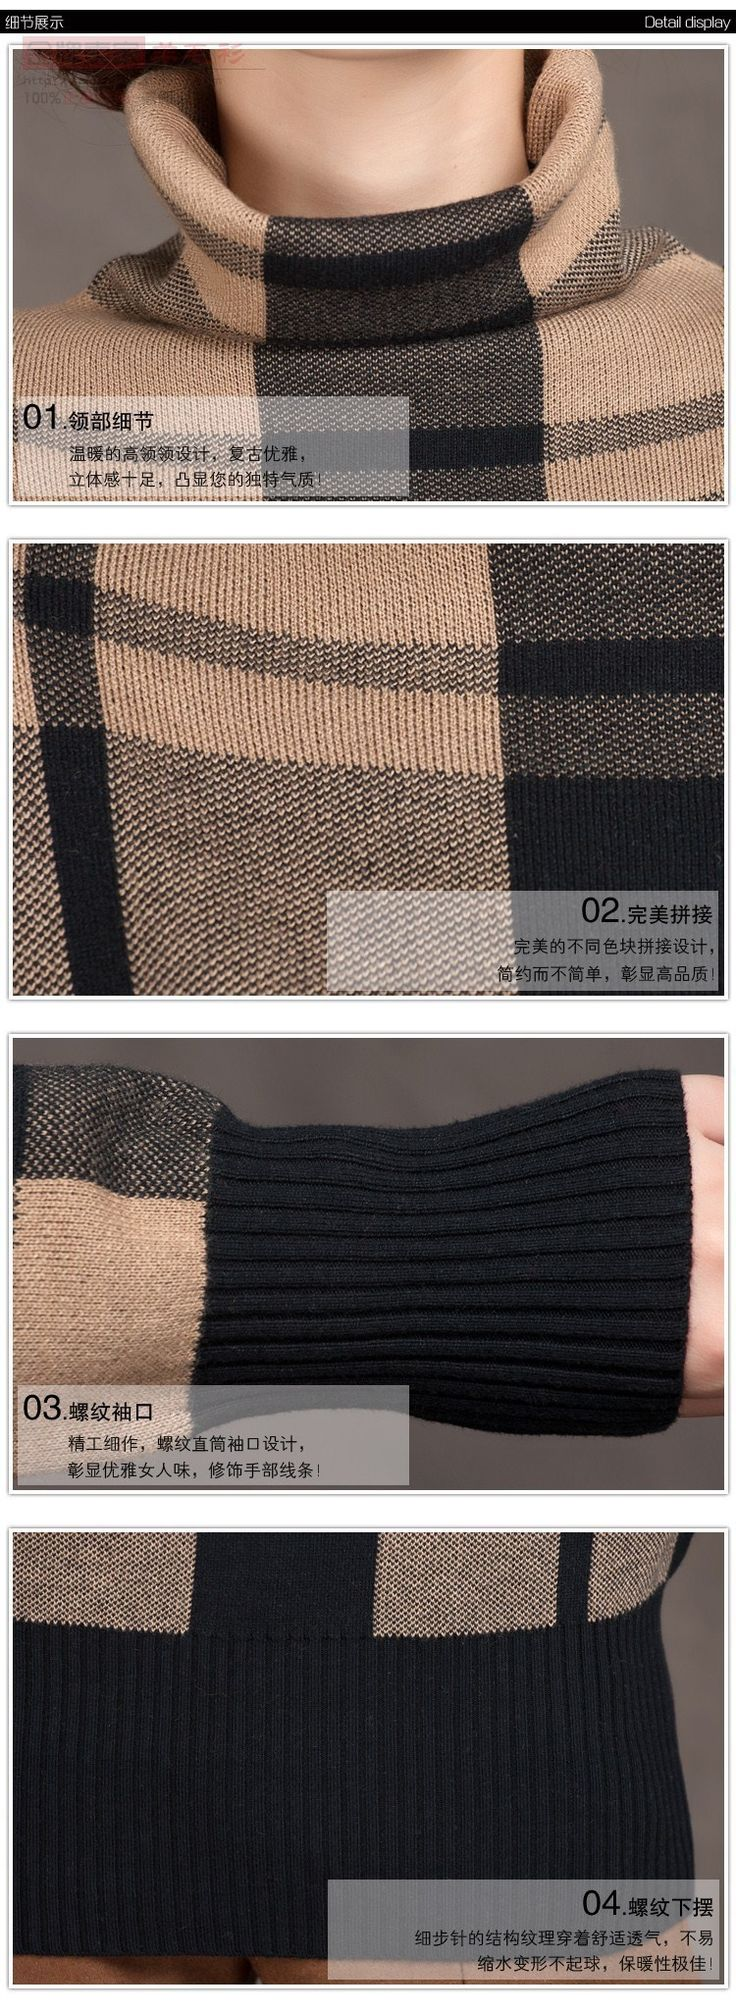 woman turtleneck sweater casual 2015 New winter autumn Korean style women's bottoming slim plaid knitted pullovers female -in Pullovers from Women's Clothing & Accessories on Aliexpress.com | Alibaba Group